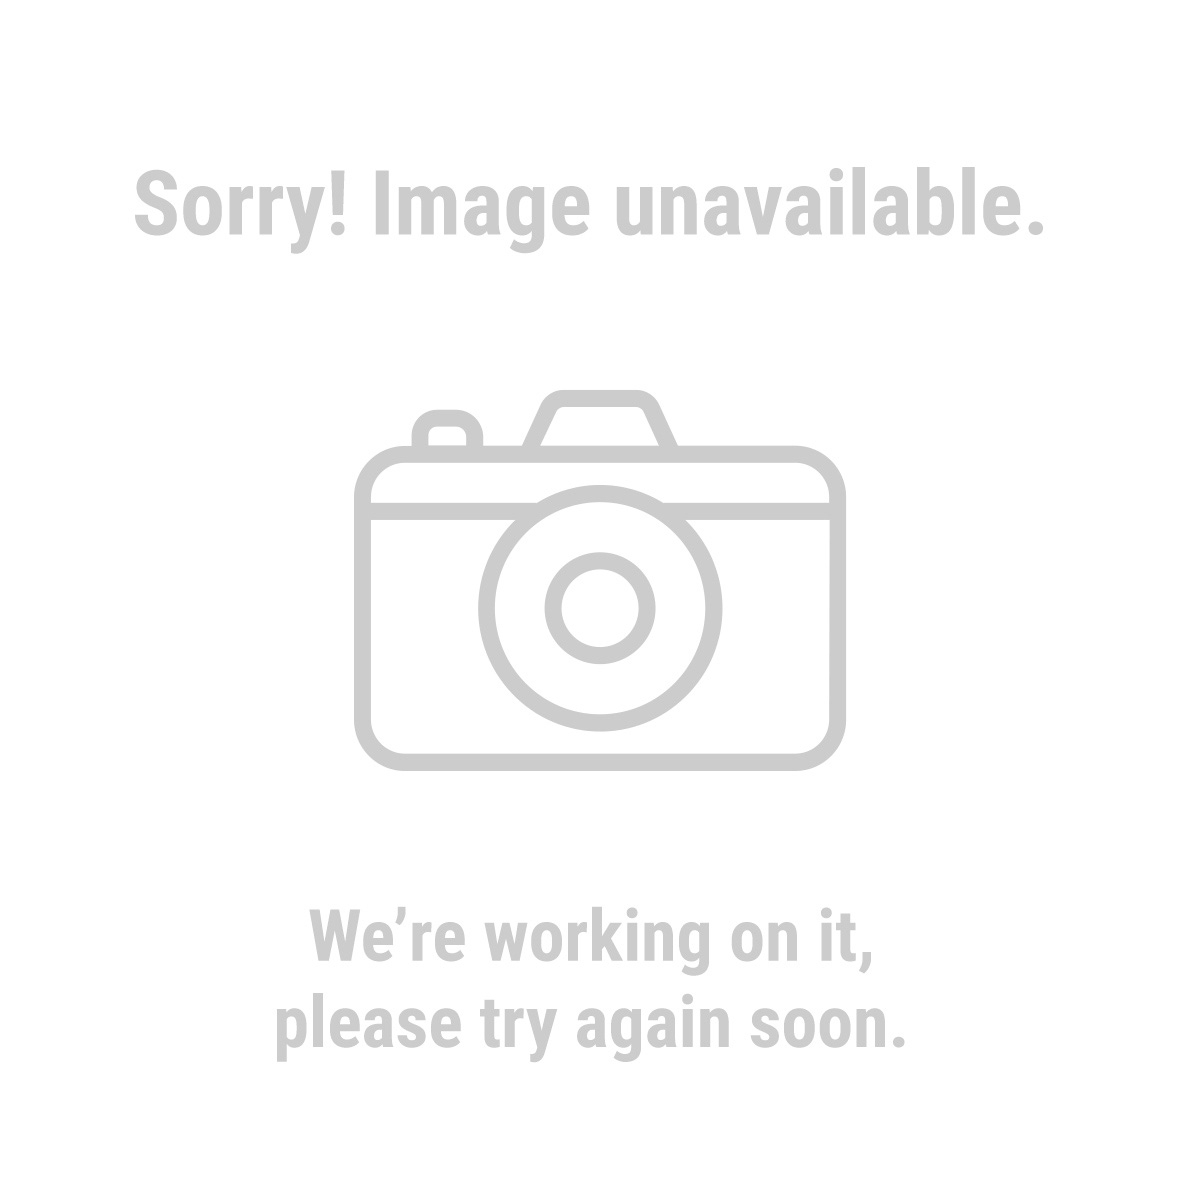 66262 25 Ft. Drain Cleaner With Drill Attachment